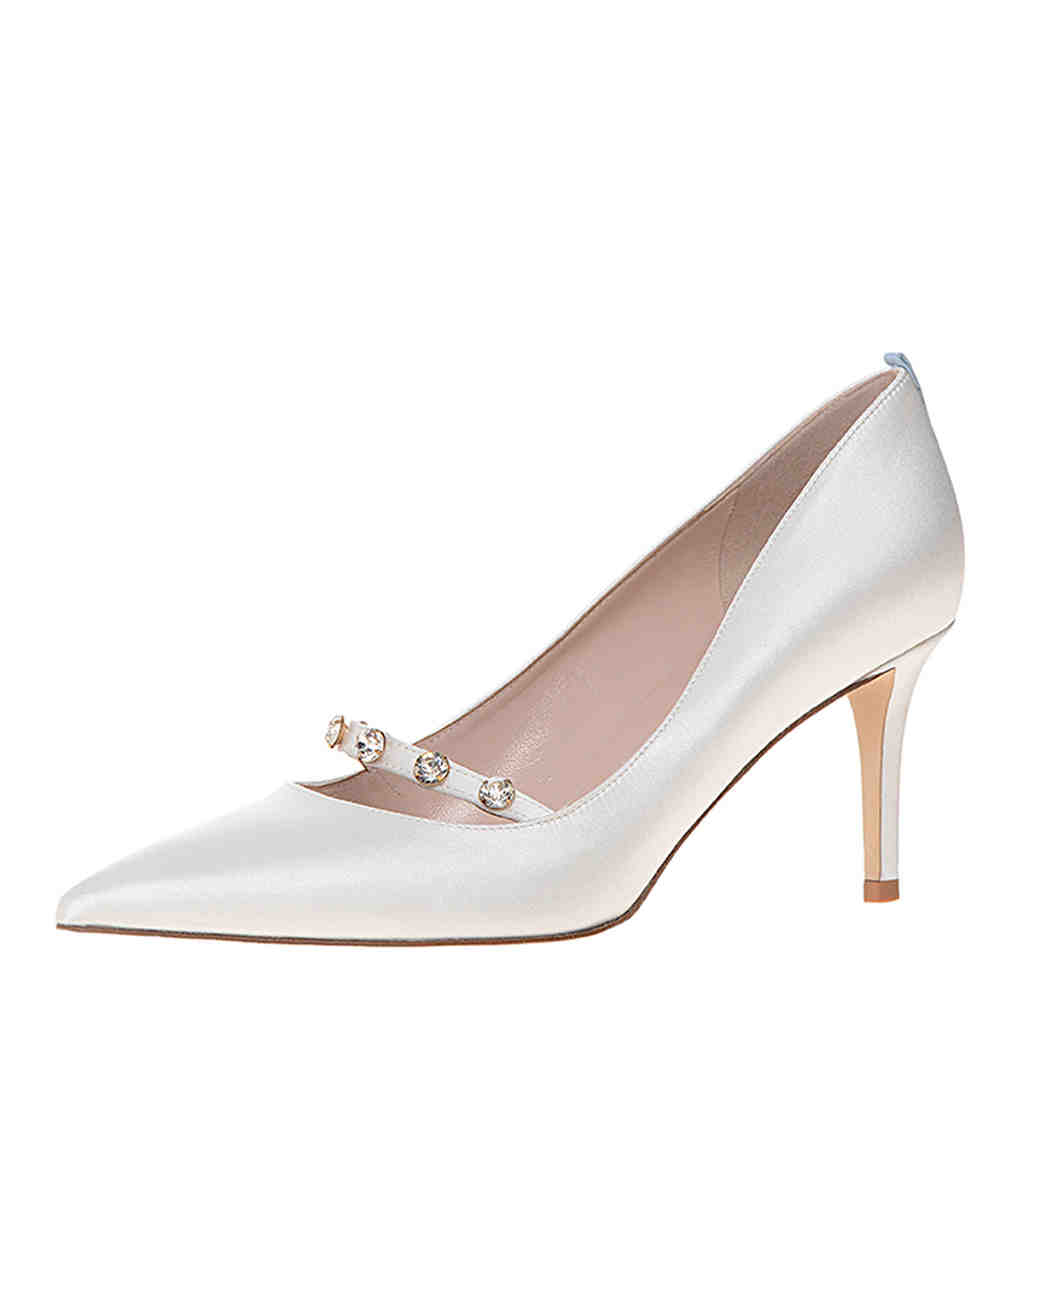 Sarah Jessica Parker Puts Her Best Foot Forward With New Collection Of Shoes Designed Just For Brides Martha Weddings